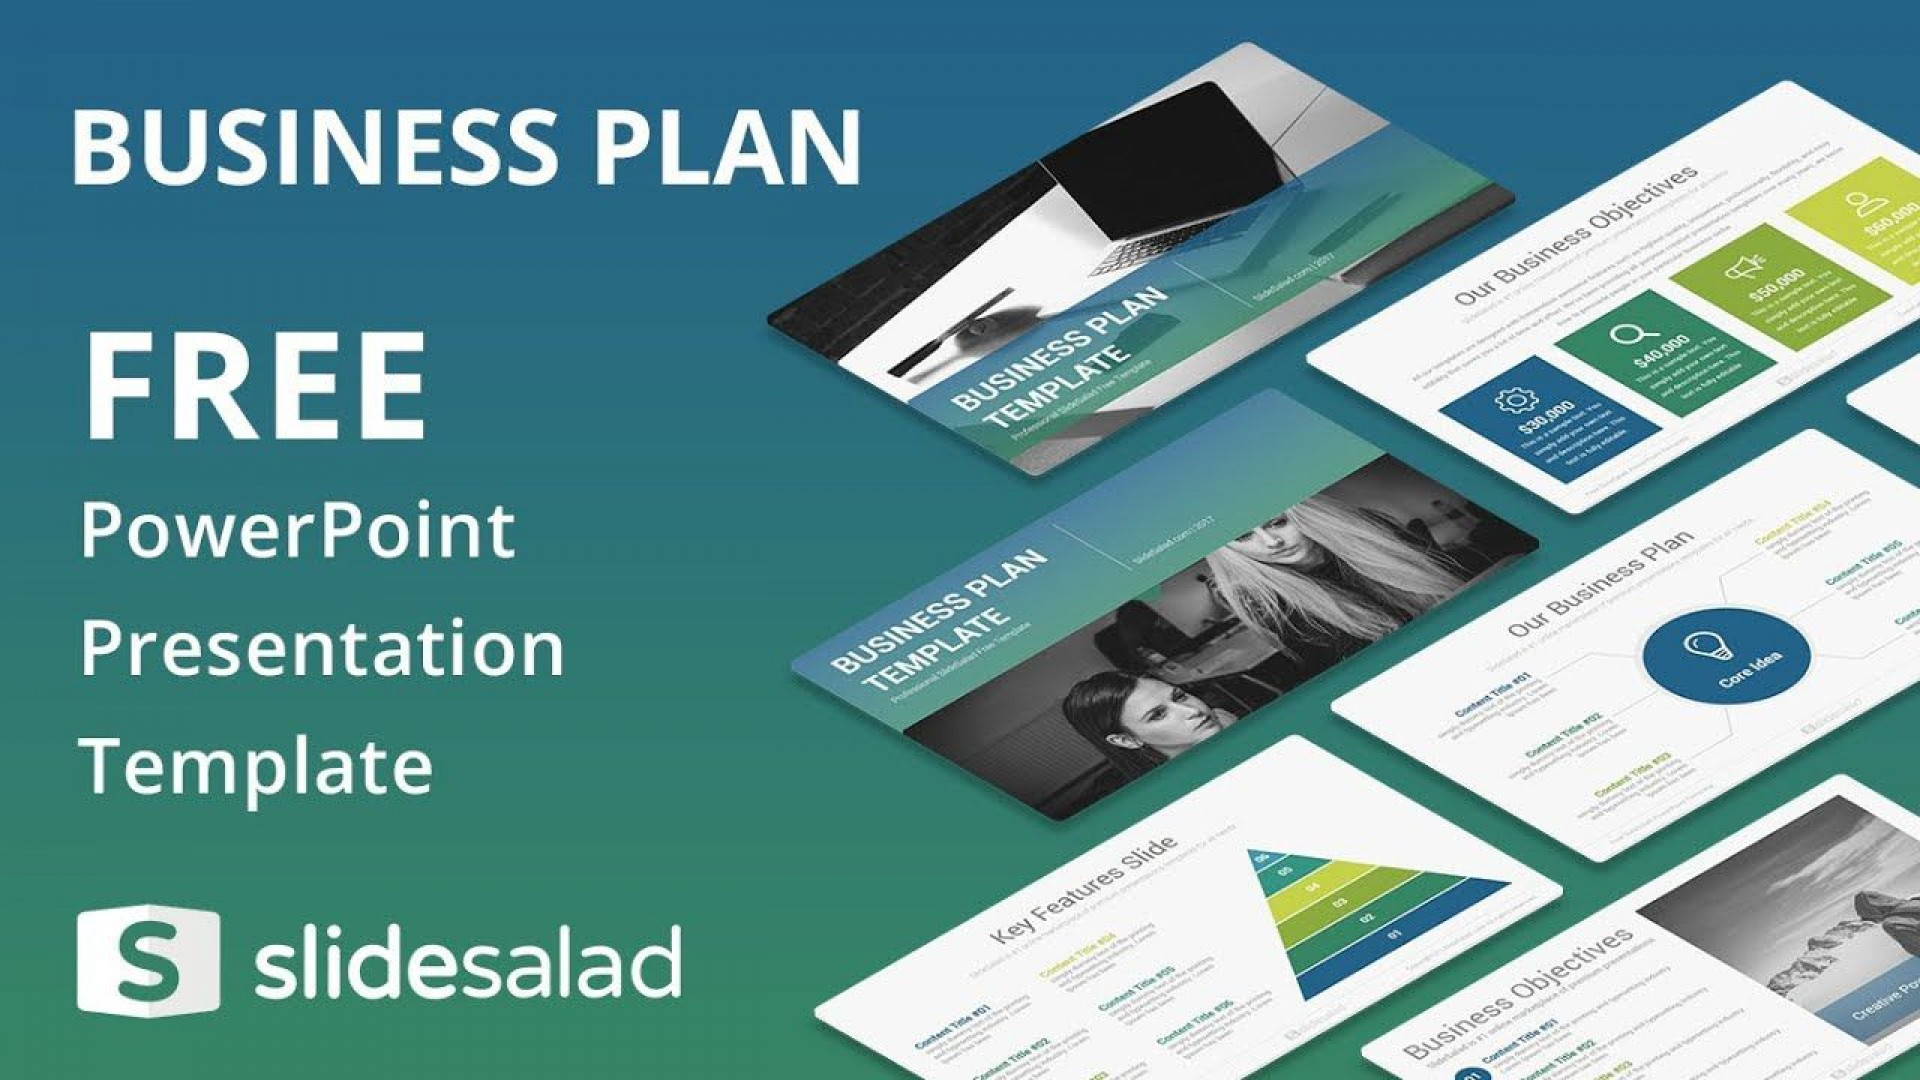 009 Magnificent Free Download Busines Proposal Template Ppt Highest Clarity  Best Plan Sample Plan.ppt 20201920